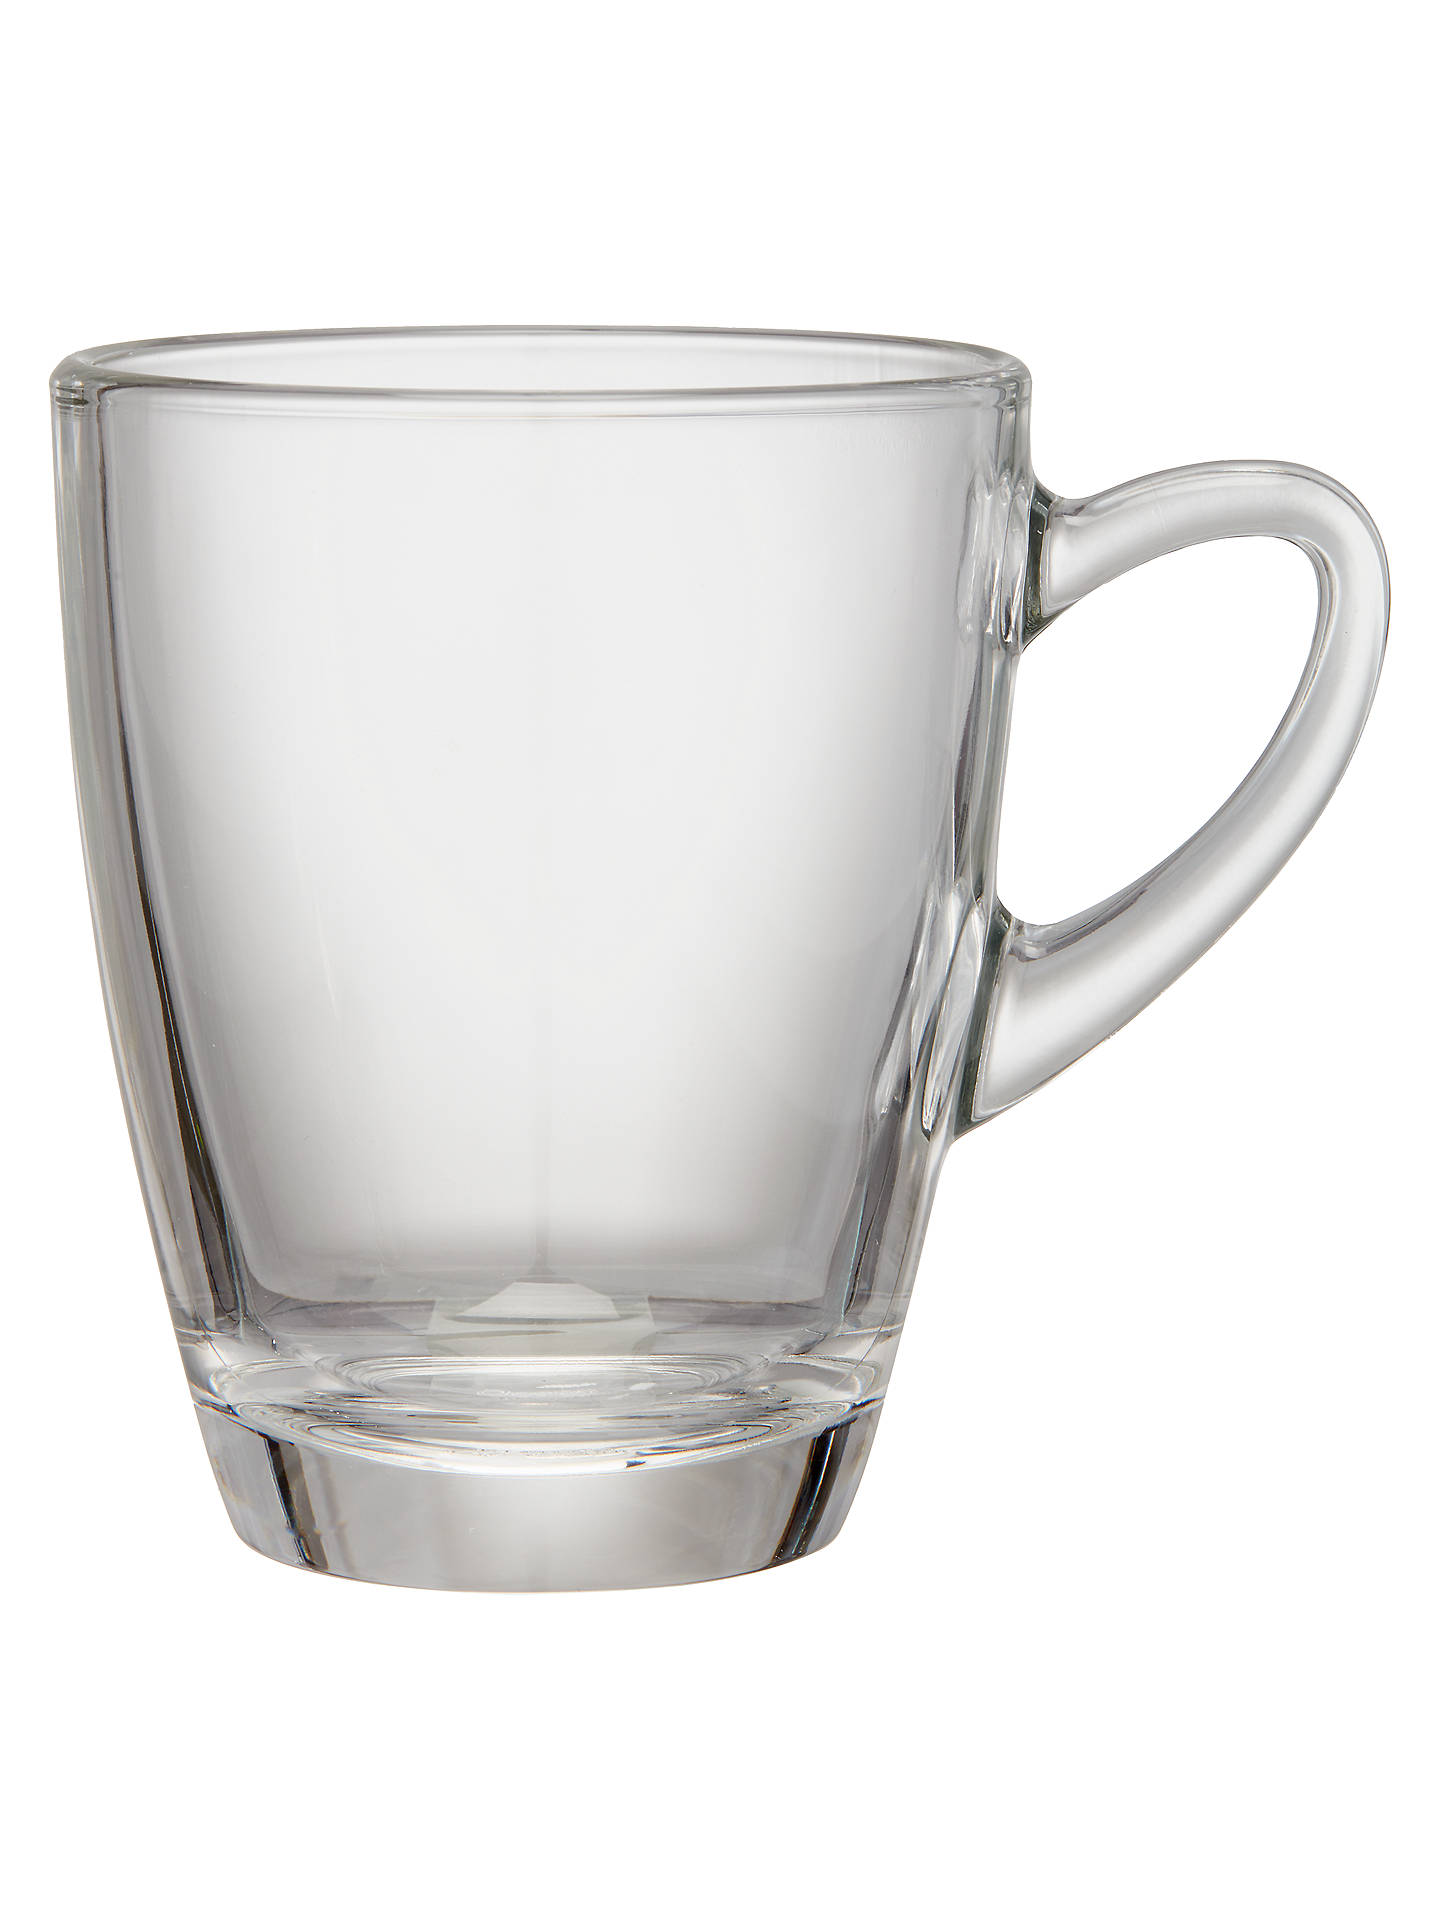 Clear Glass Coffee Cup With Metal Holder Buy Coffee Cup